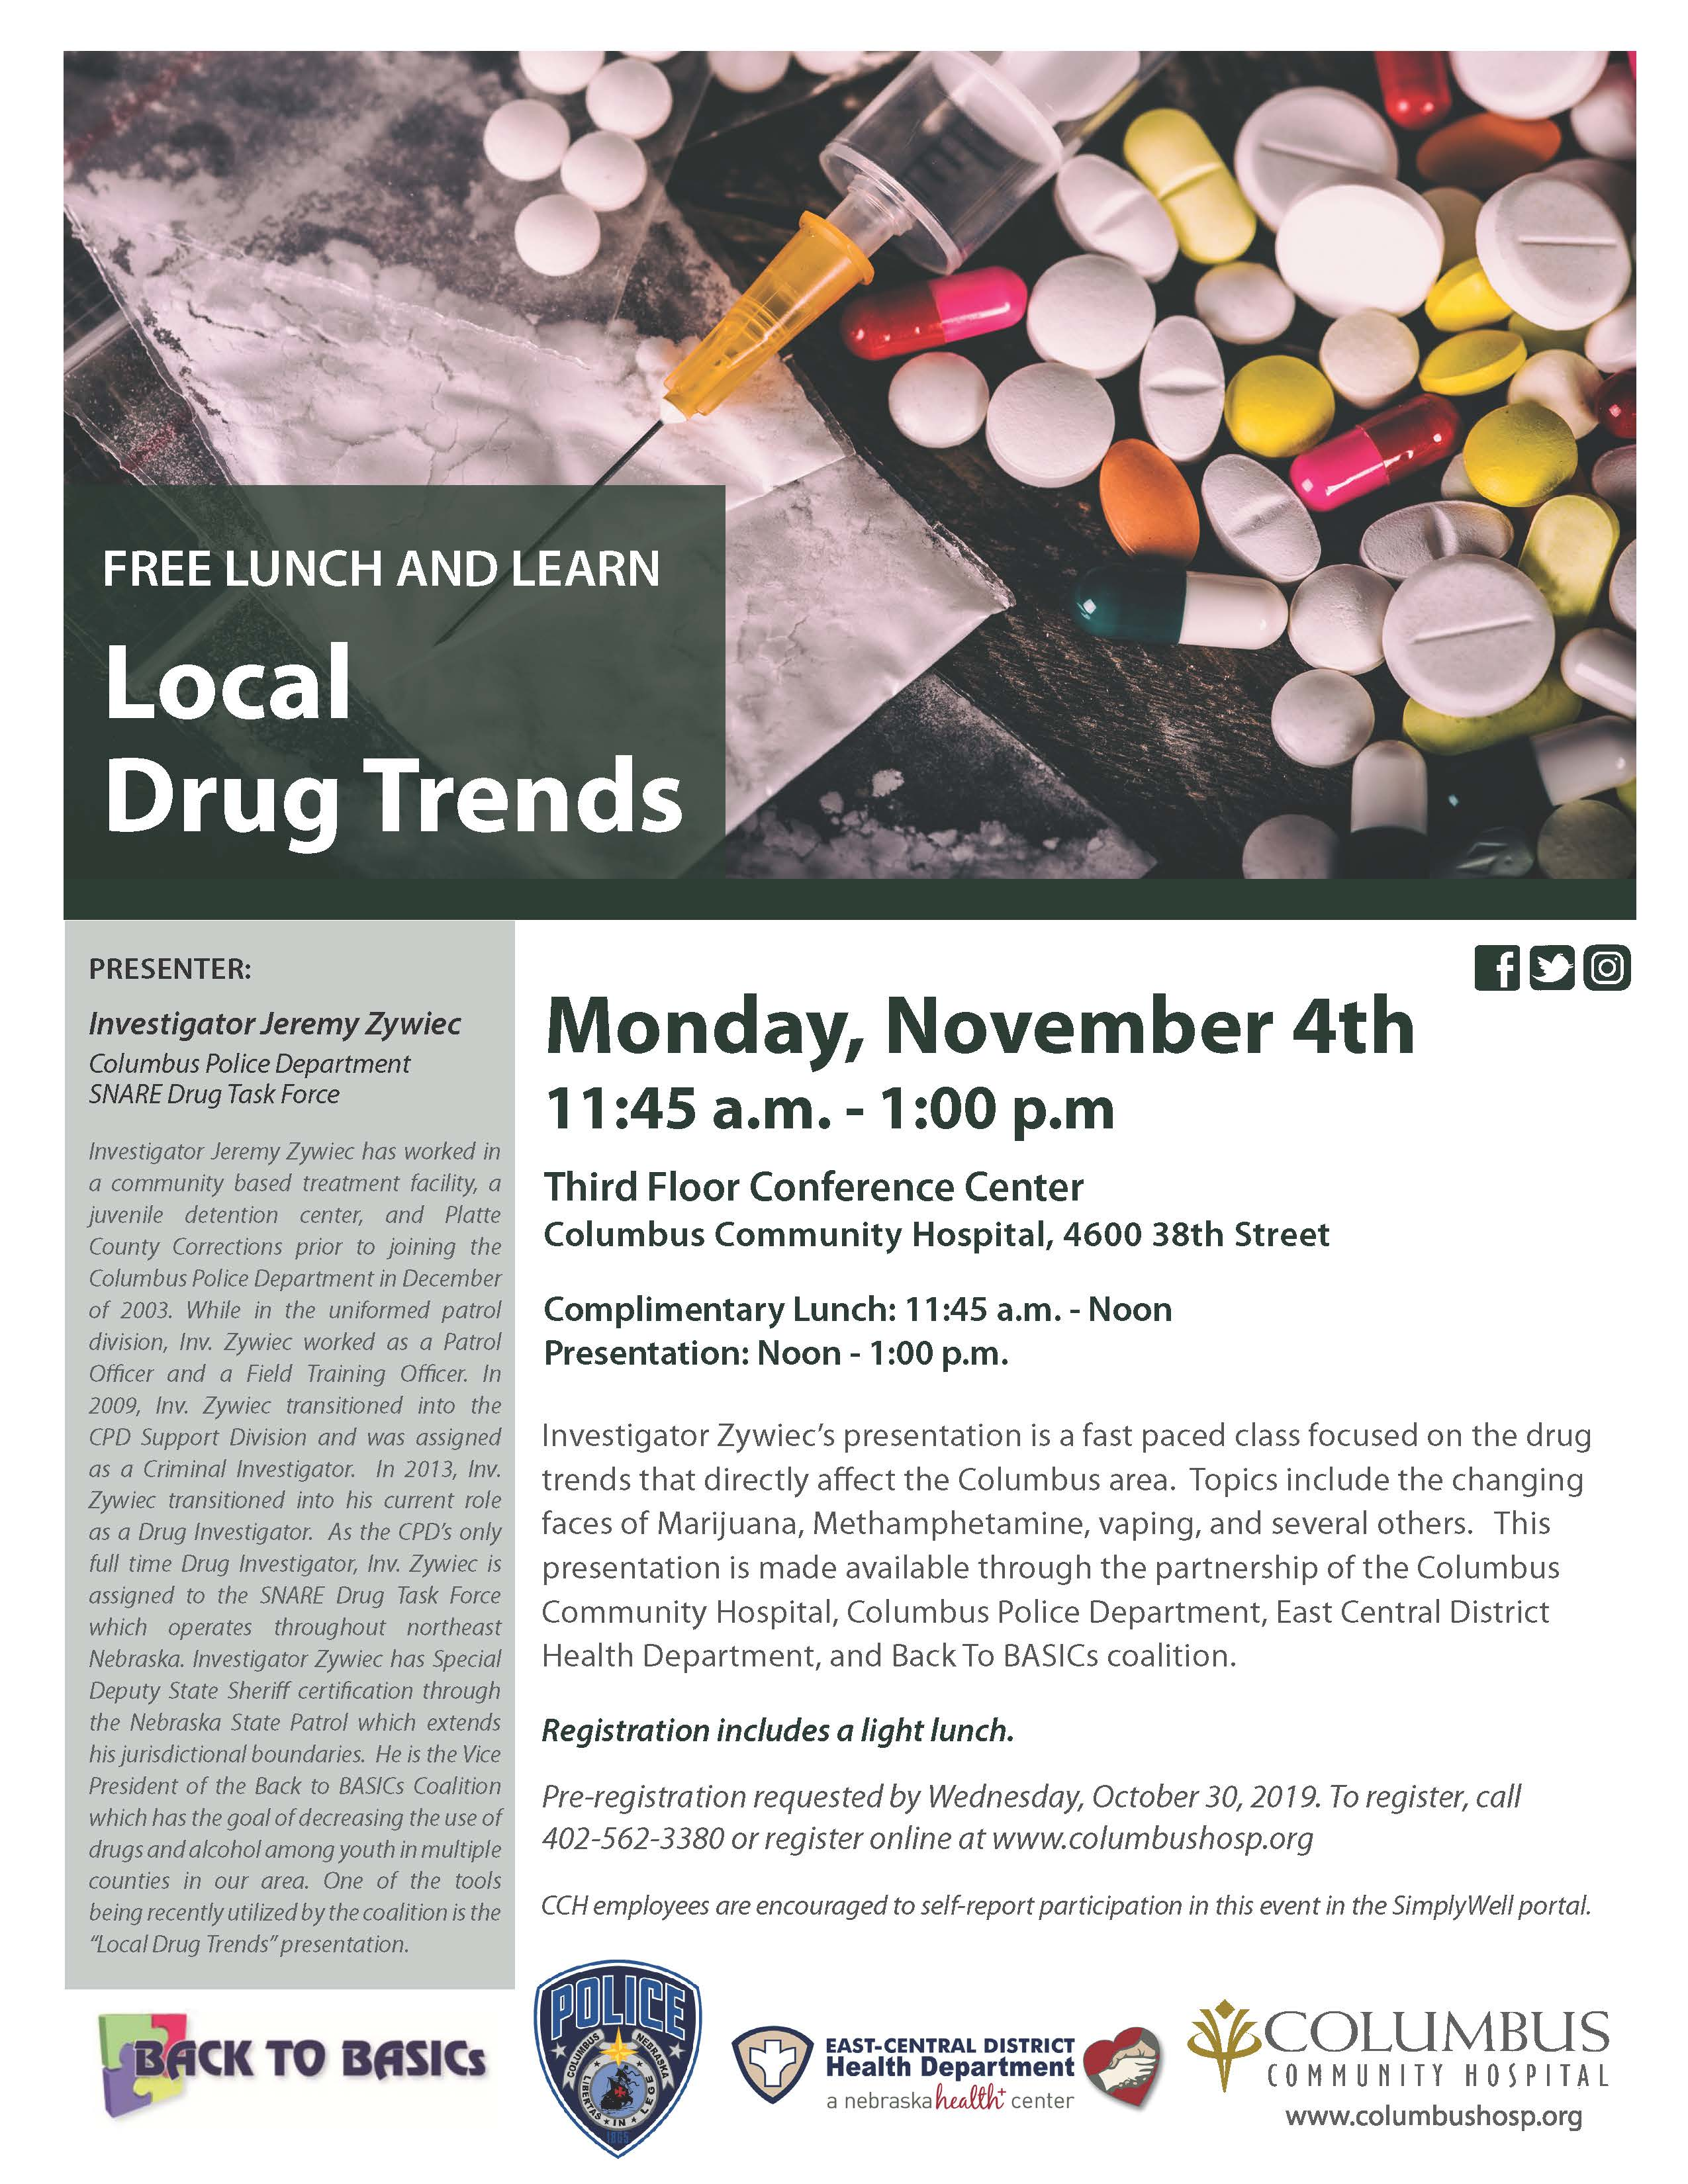 Free Lunch and Learn: Local Drug Trends